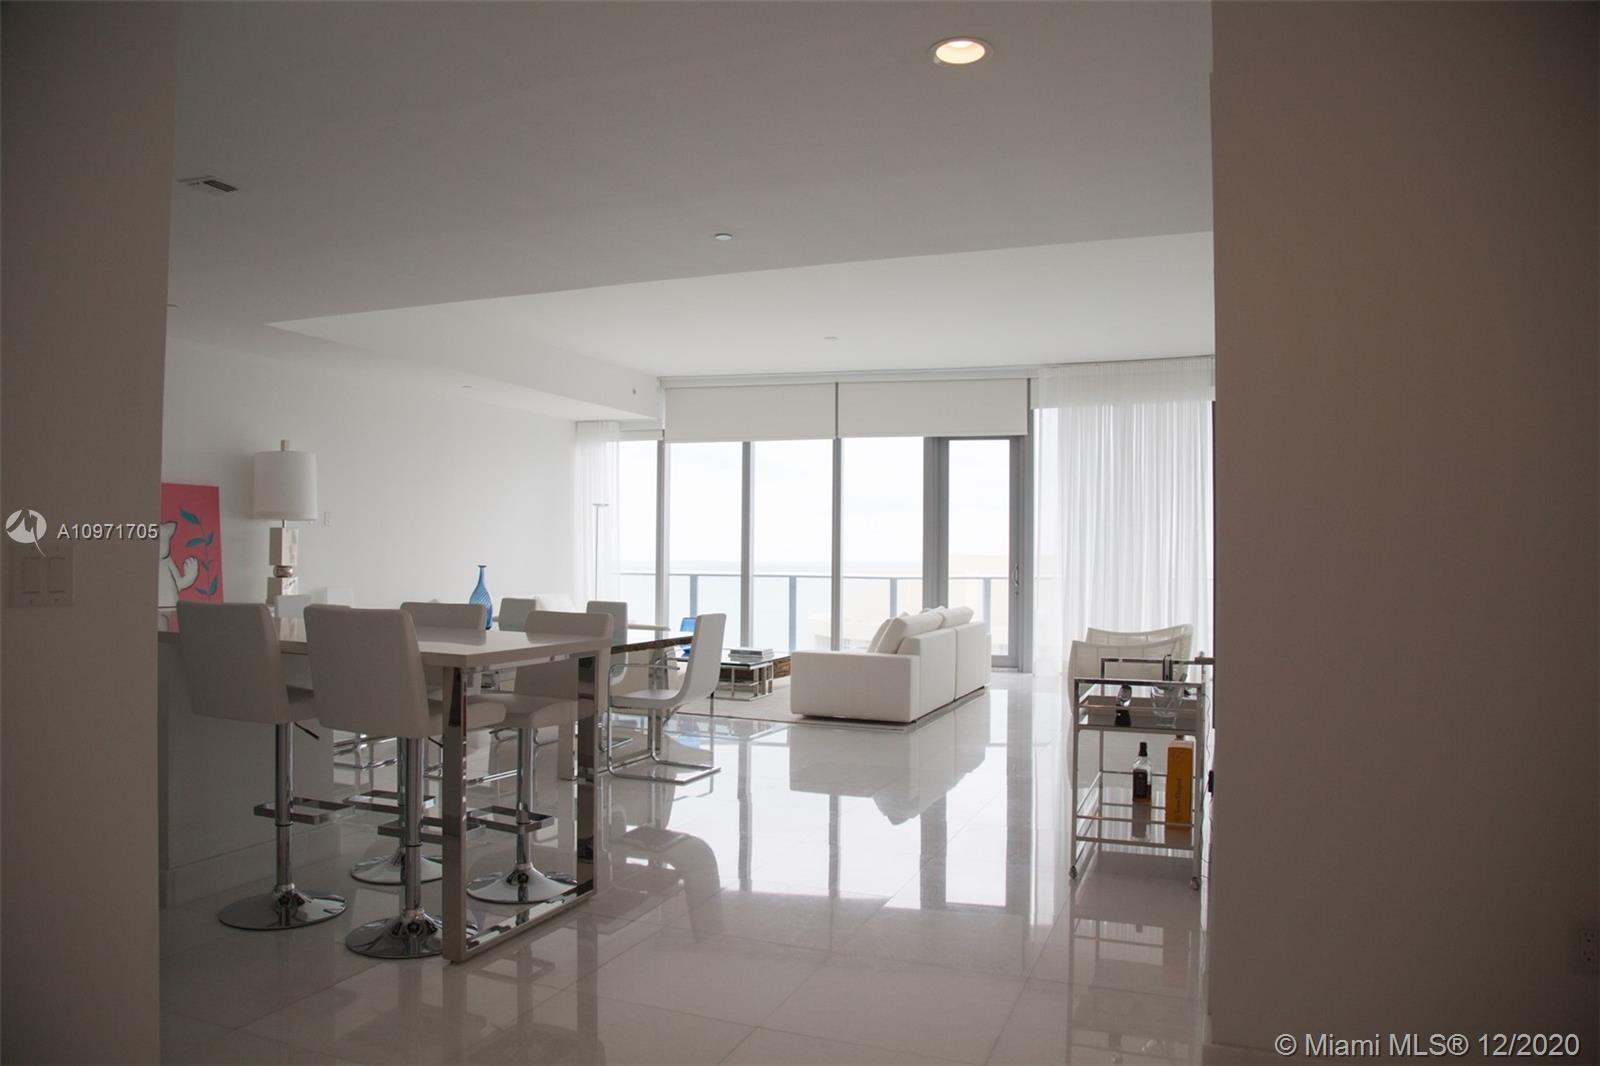 STUNNING!! BREATHTAKING VIEWS OF OCEAN AND INTRACOASTAL FROM THIS BEAUTIFULLY DONE 2 PLUS DEN, 3 FULL BATHROOMS IN PRESTIGIOUS CHATEAU BEACH IN SUNNY ISLES. WHITE MARBLE FLOORS THROUGHOUT. ELECTRIC DRAPES, DESIGNER FURNITURE ALMOST NO USE ALSO FOR SALE. MUST SEE!!